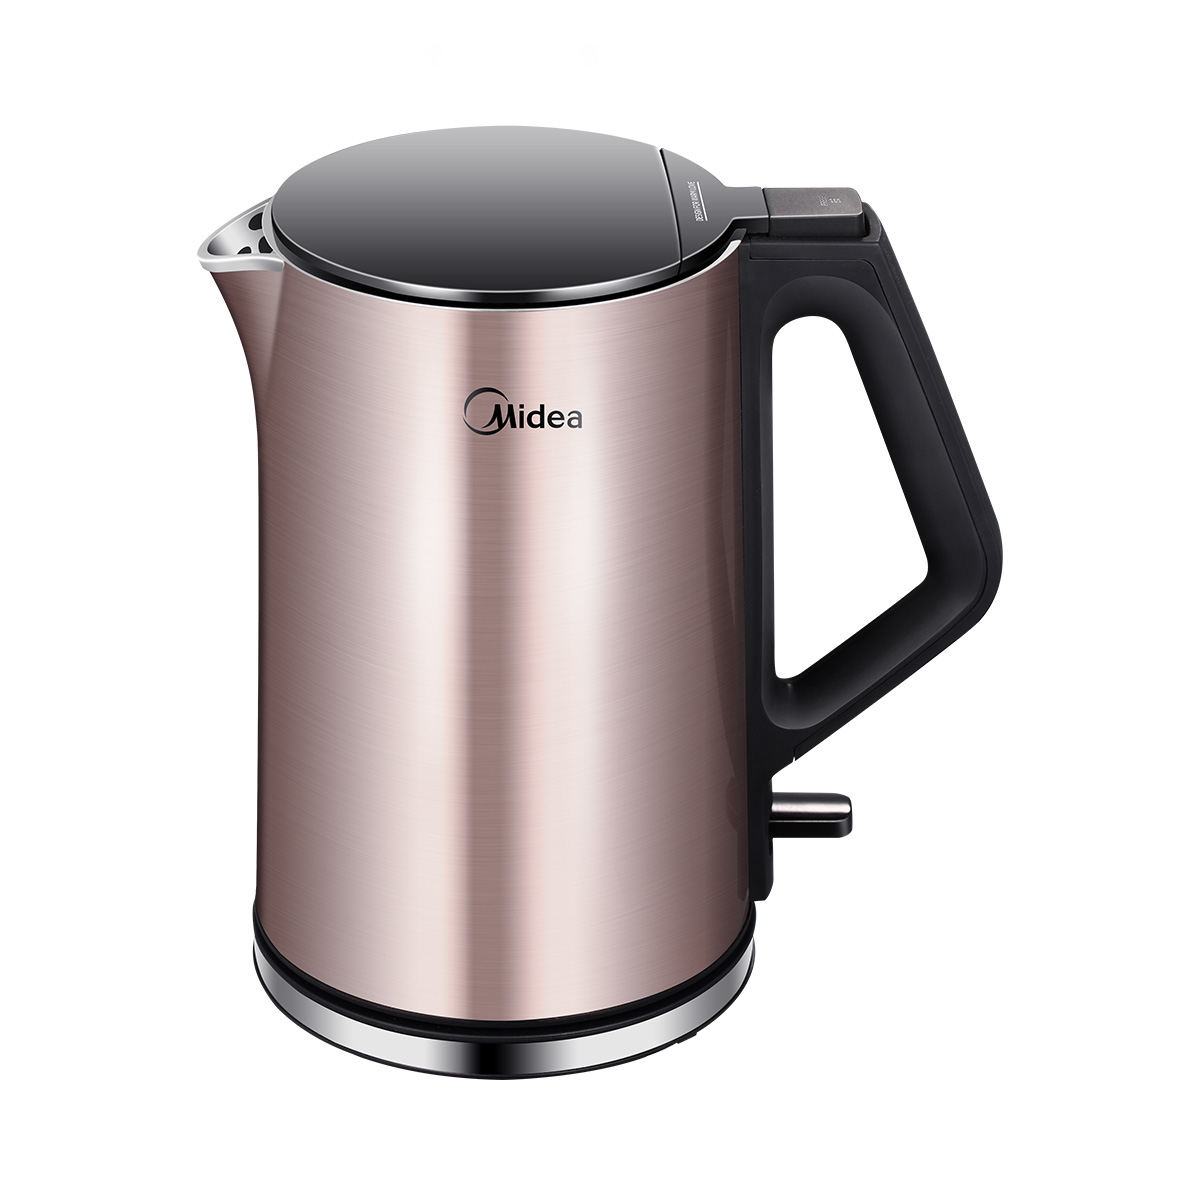 Midea Stainless Steel Electric Kettle With Safety Auto-OFF Function 1.5L Kettles WHJ1510B